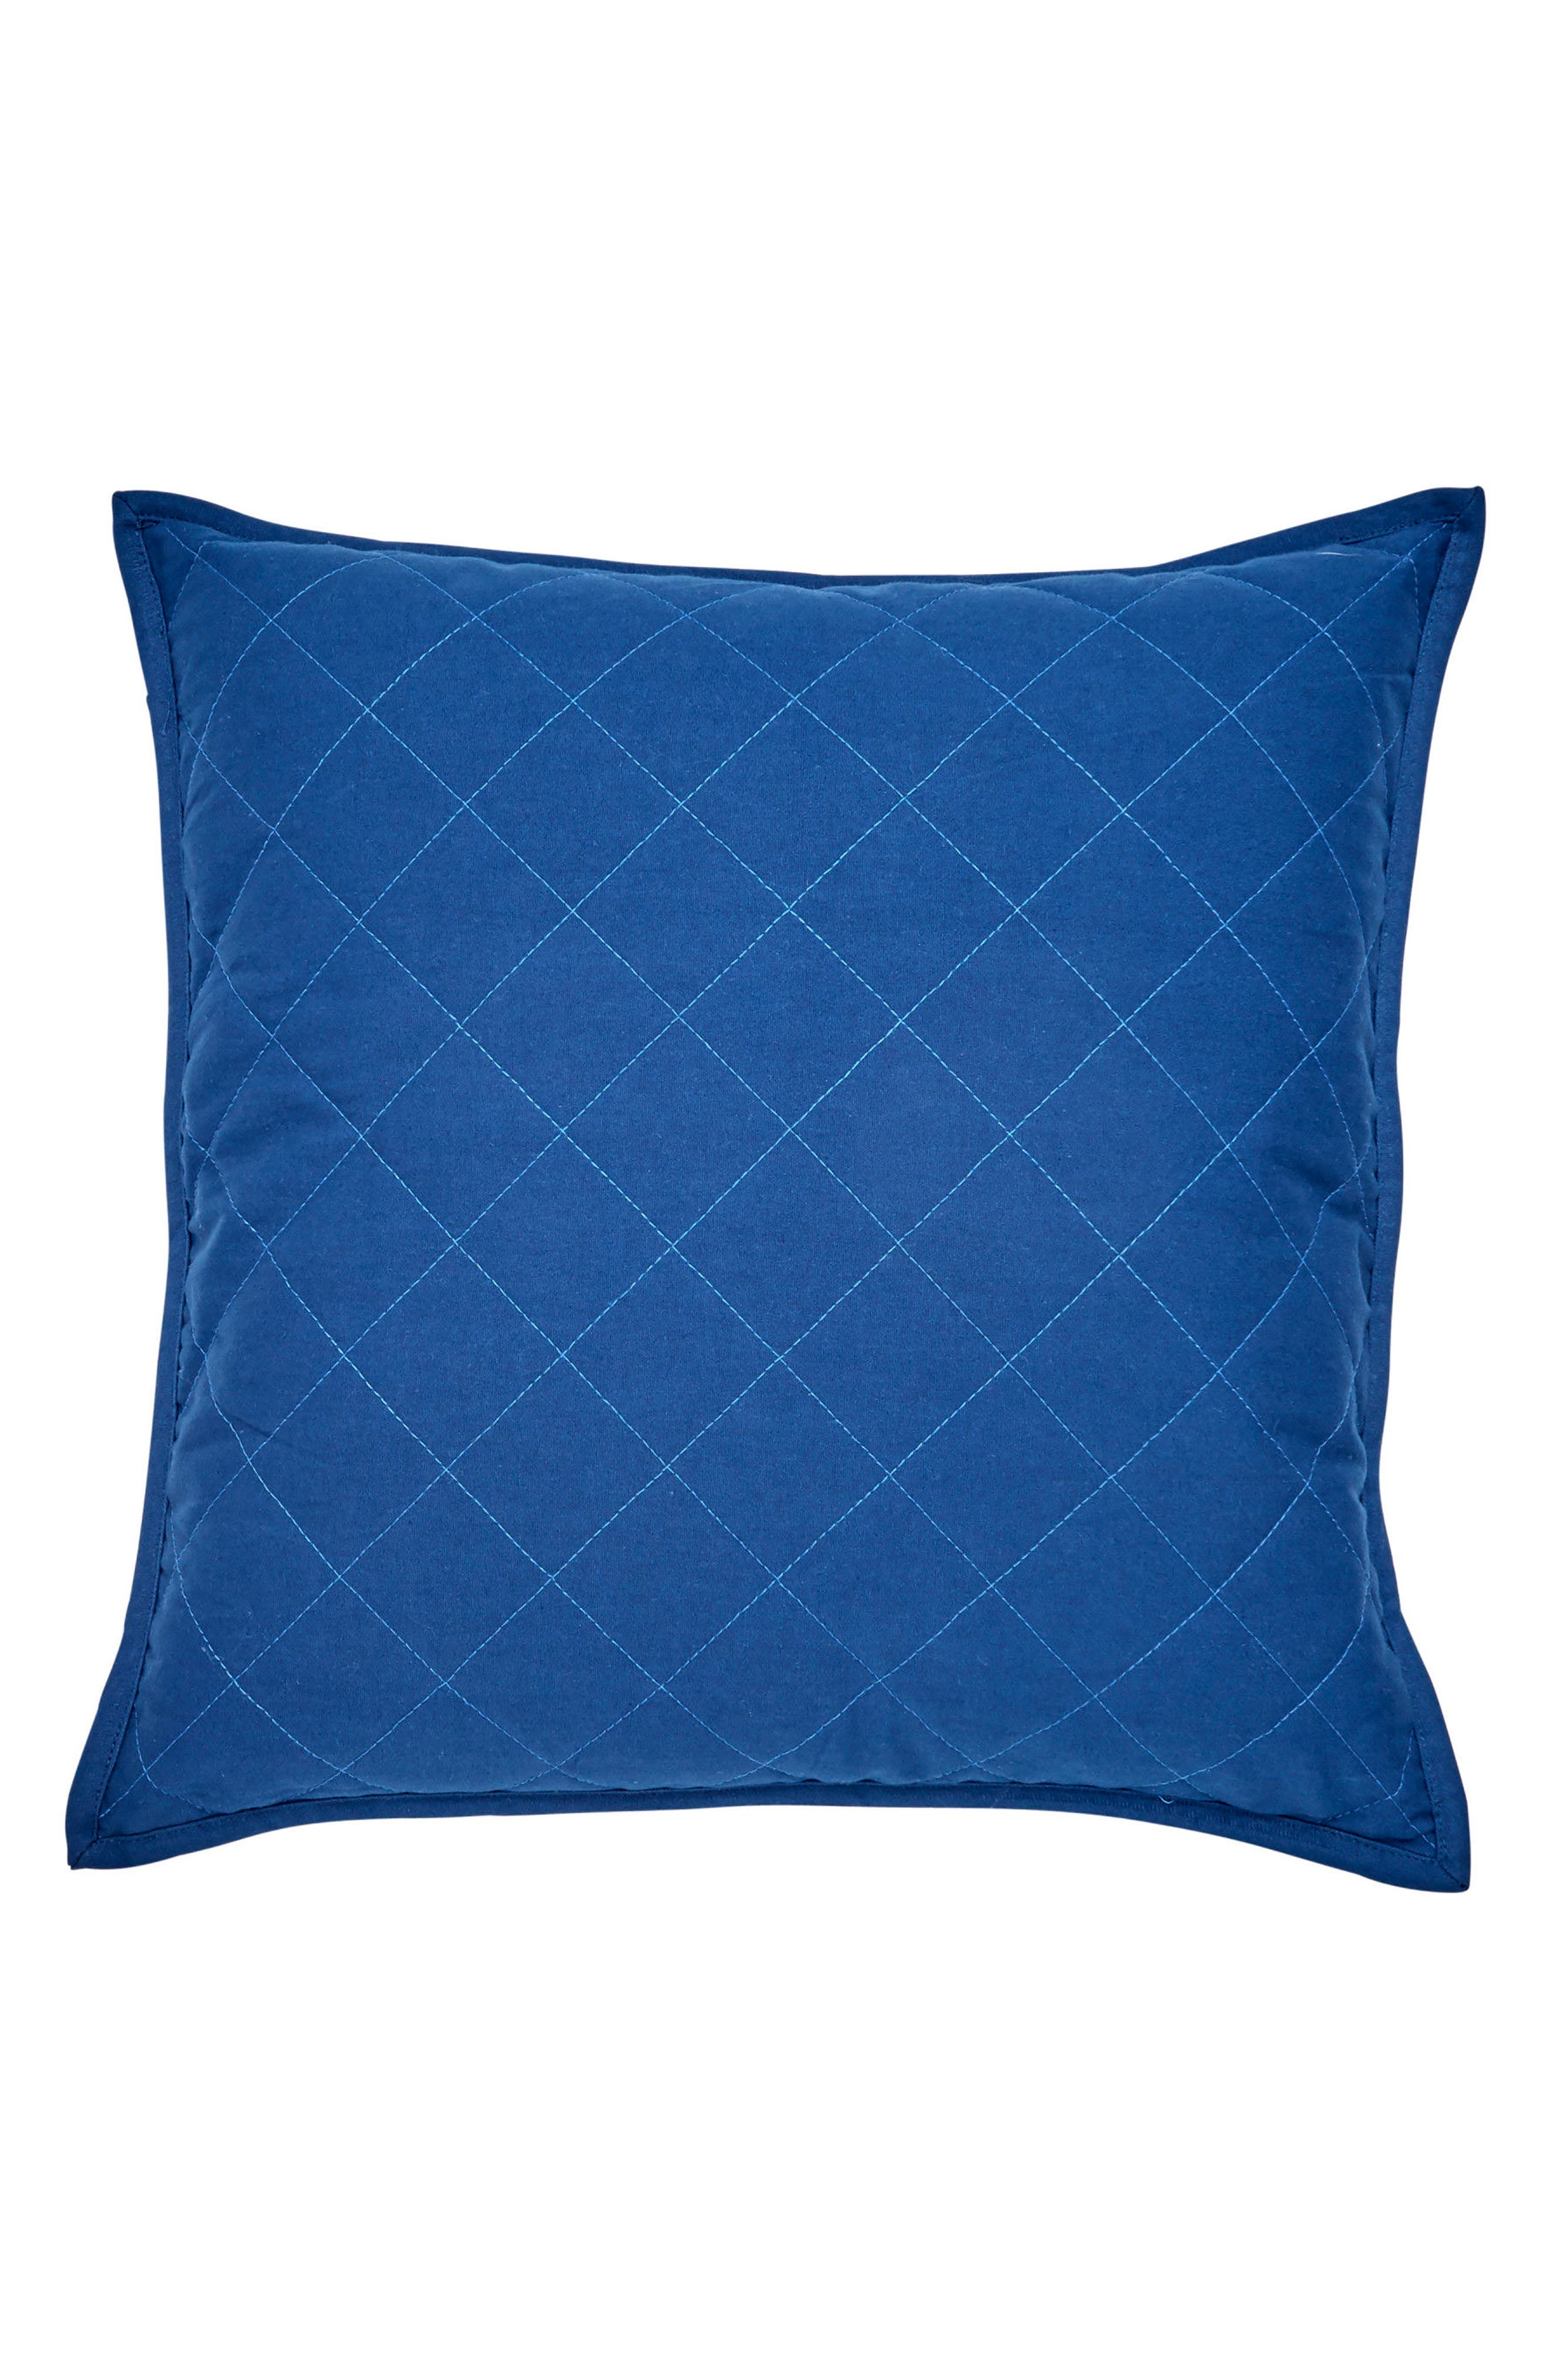 Yacht Club Quilted Accent Pillow,                         Main,                         color, Navy